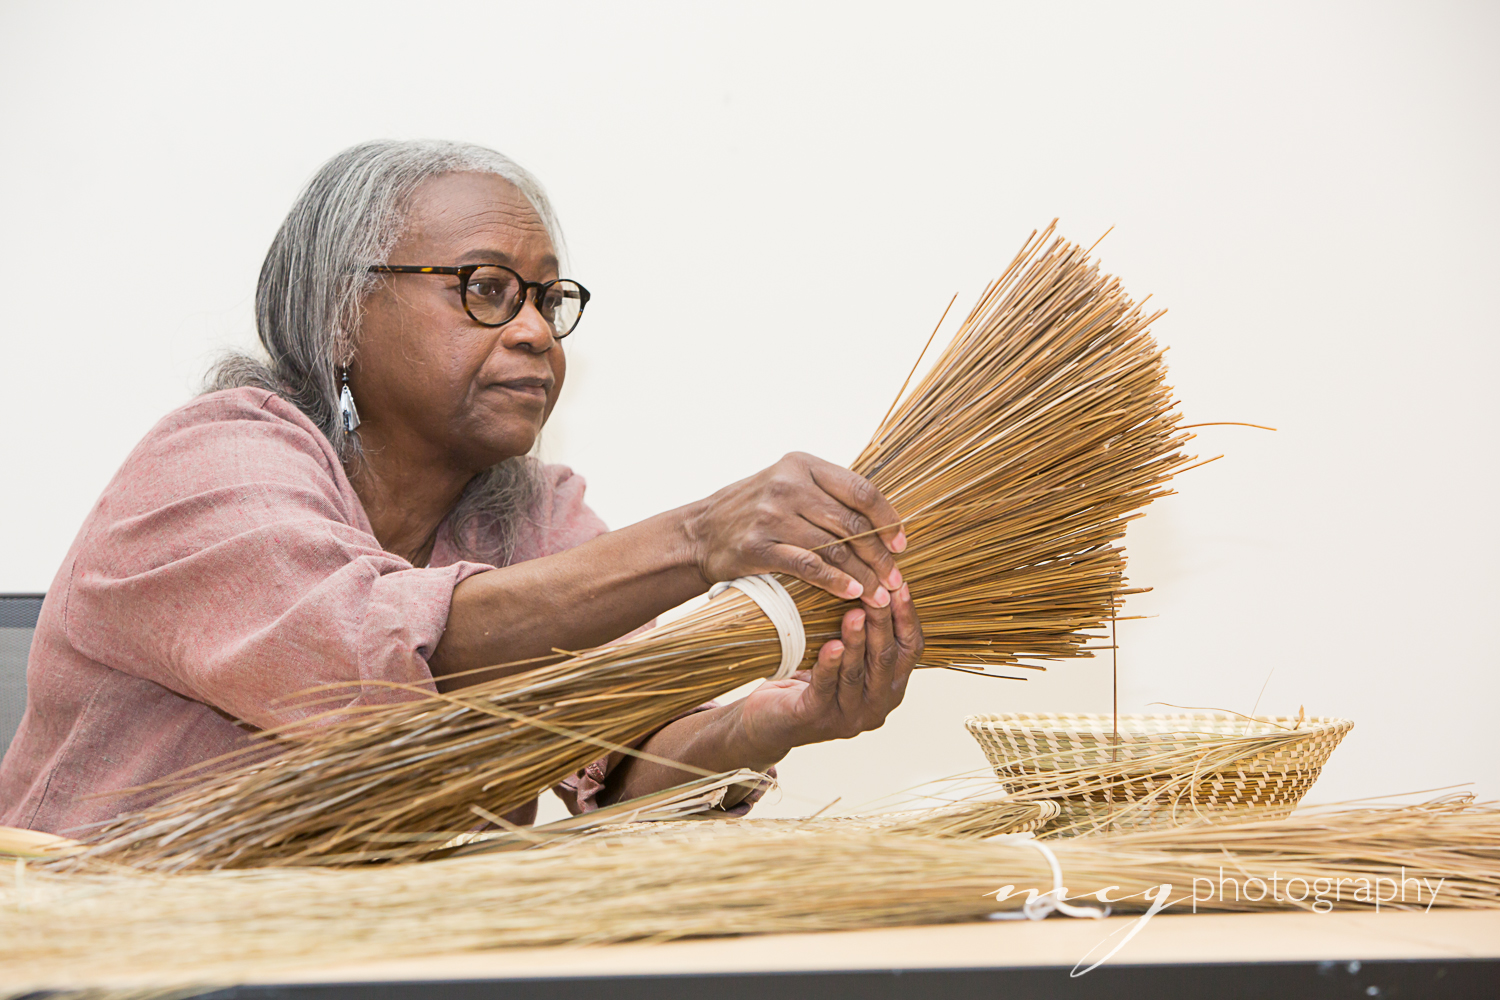 Mary Jackson, Basket Weaver